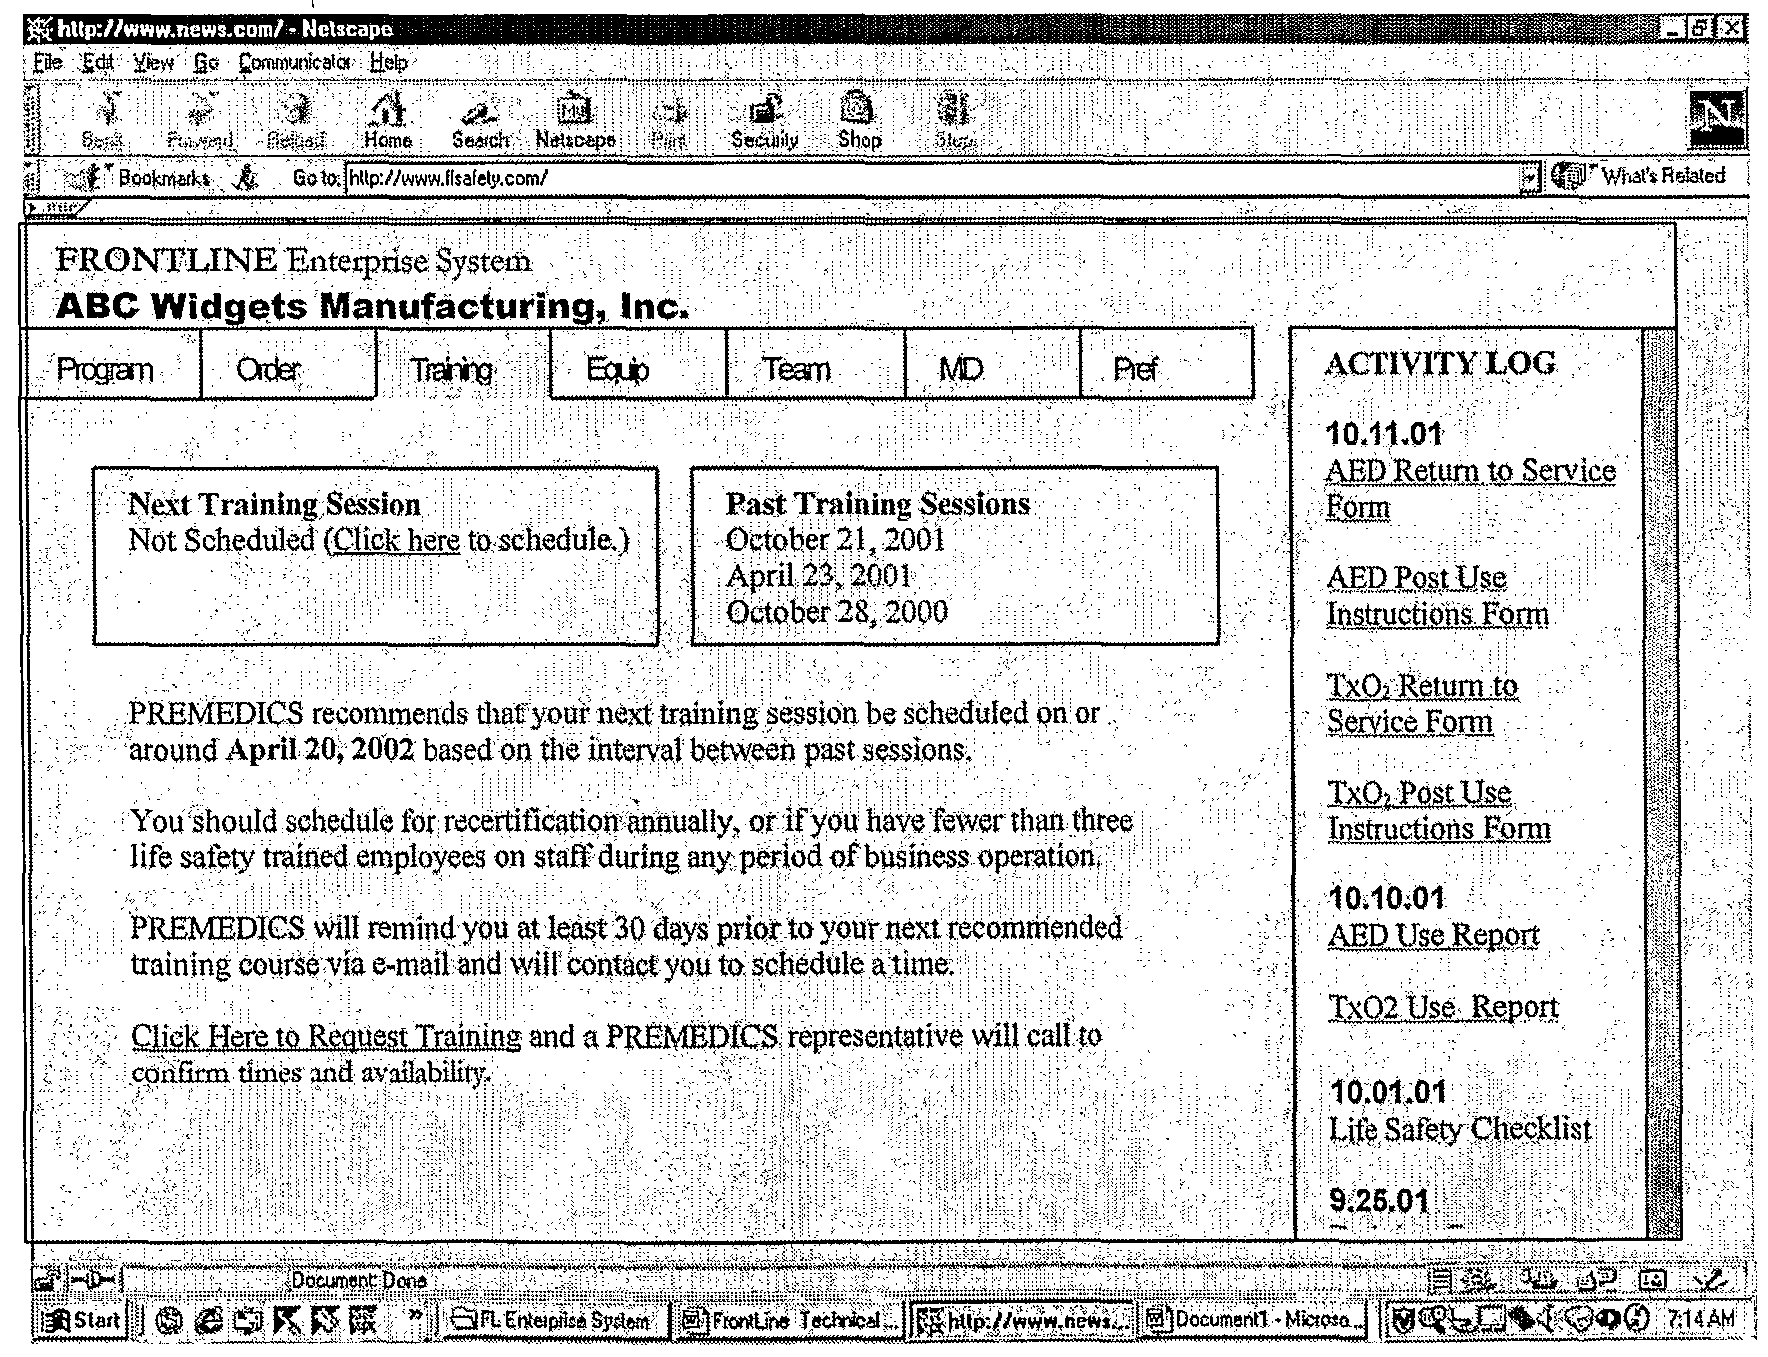 Movie Receipts Excel Patent Woa  System And Method For Monitoring And  Receipt Of The Invoice Excel with Free Invoice Template For Excel Excel Figure Imgf Printing Invoices Pdf